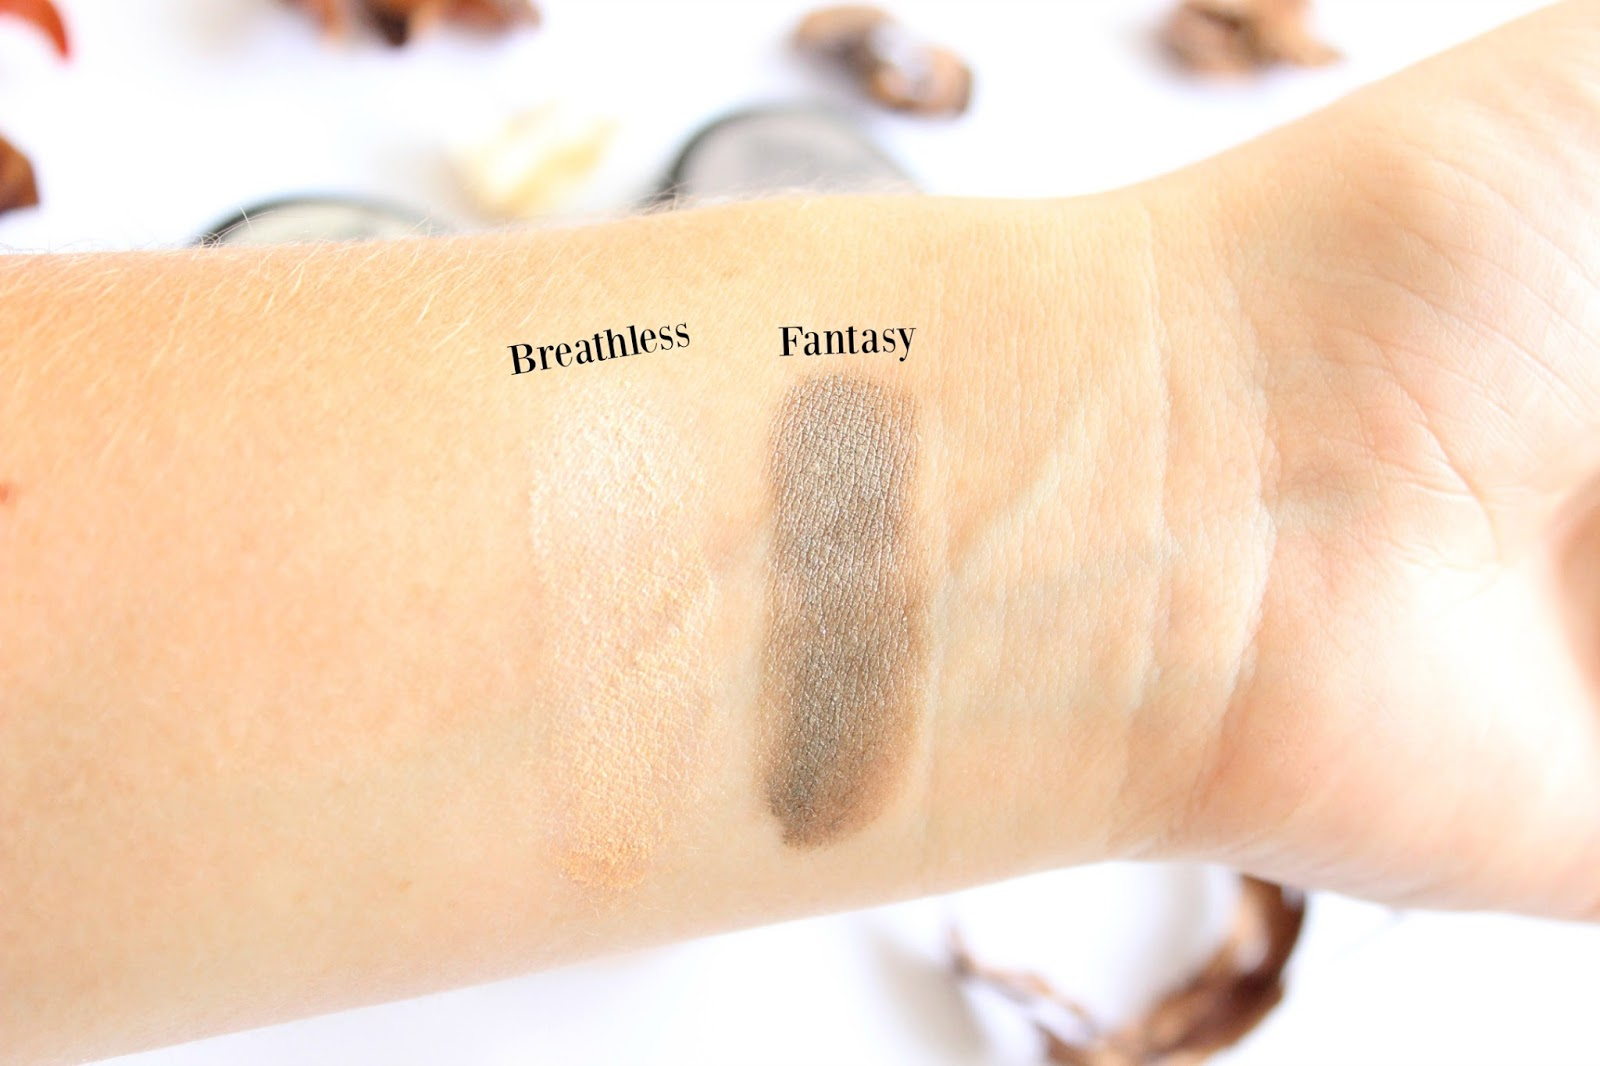 Maybelline Color Tattoo Breathless & Fantasy Swatches